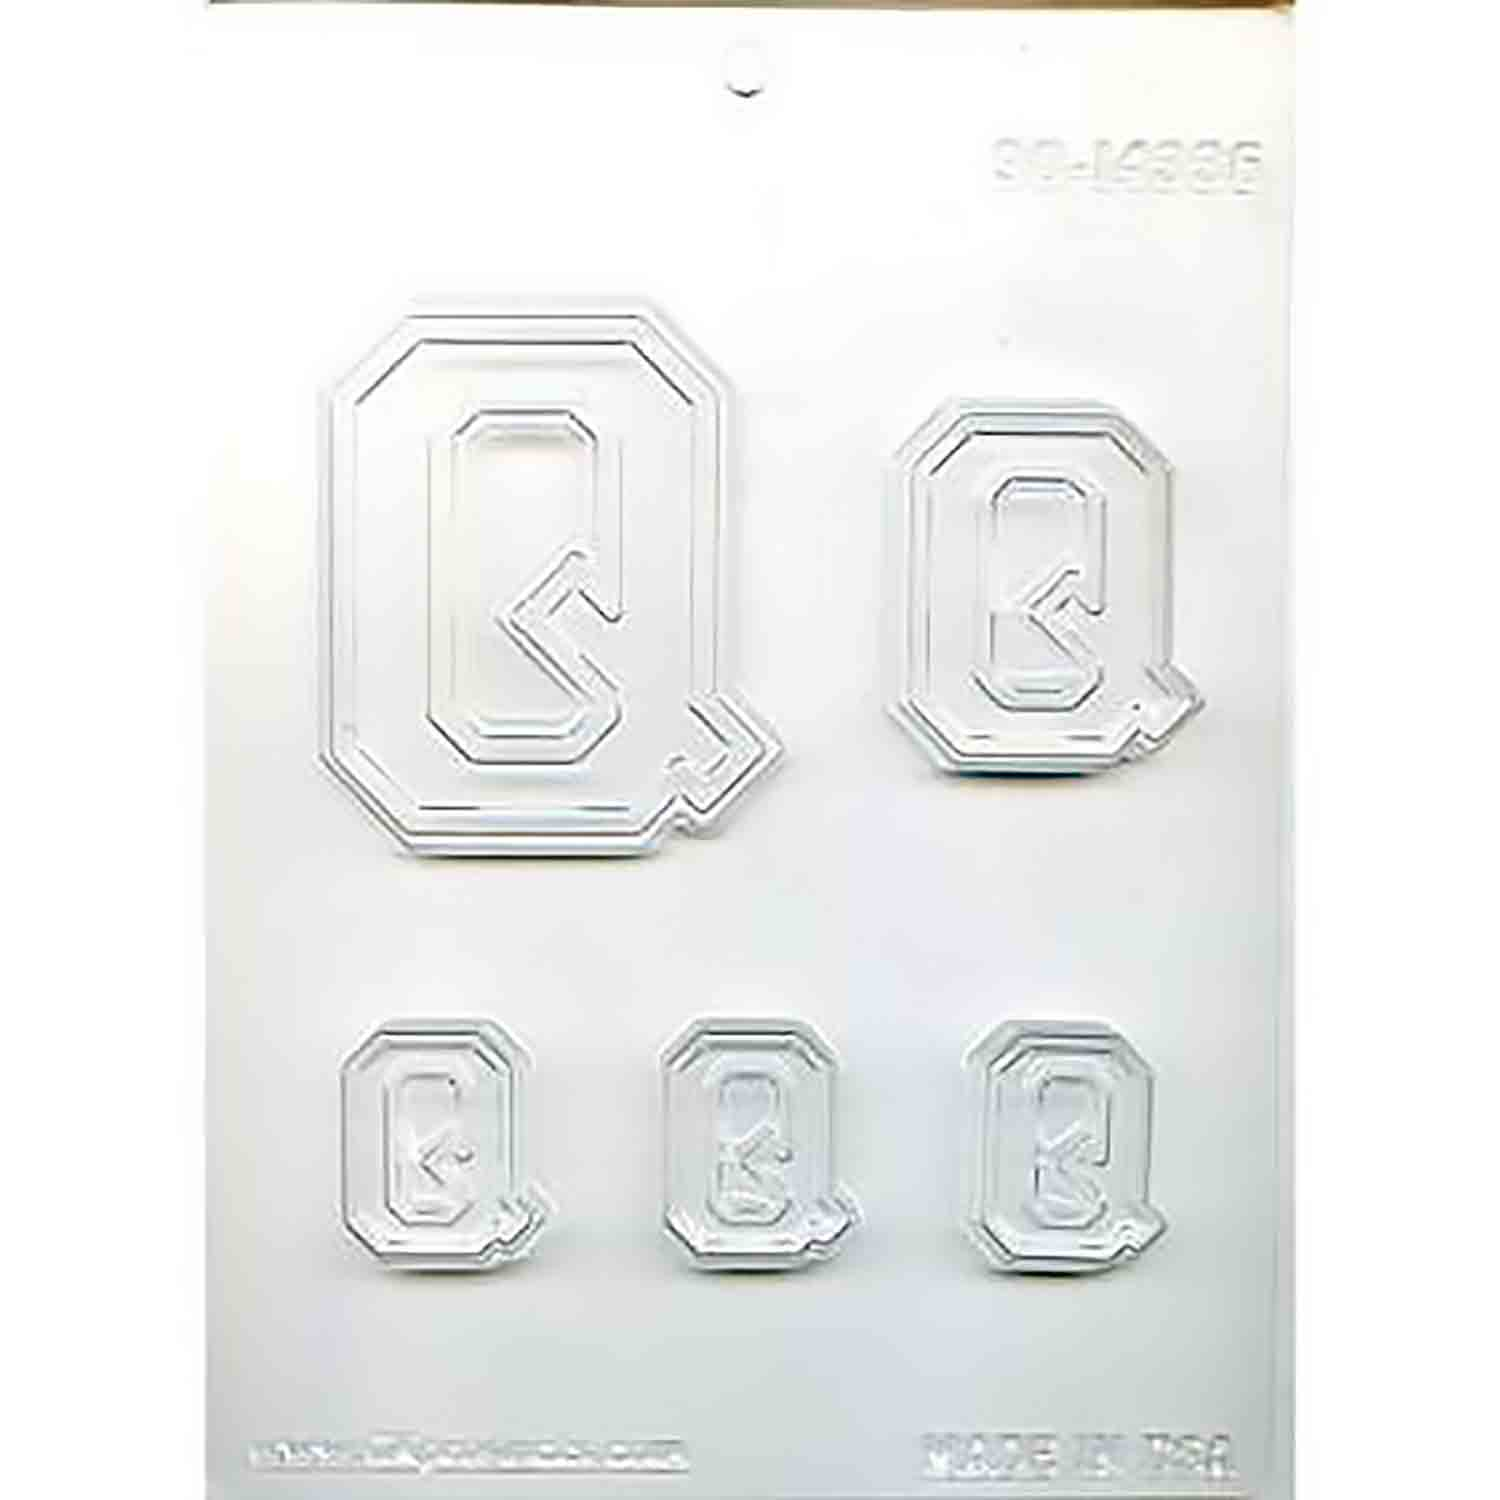 Collegiate Letter Q Chocolate Candy Mold